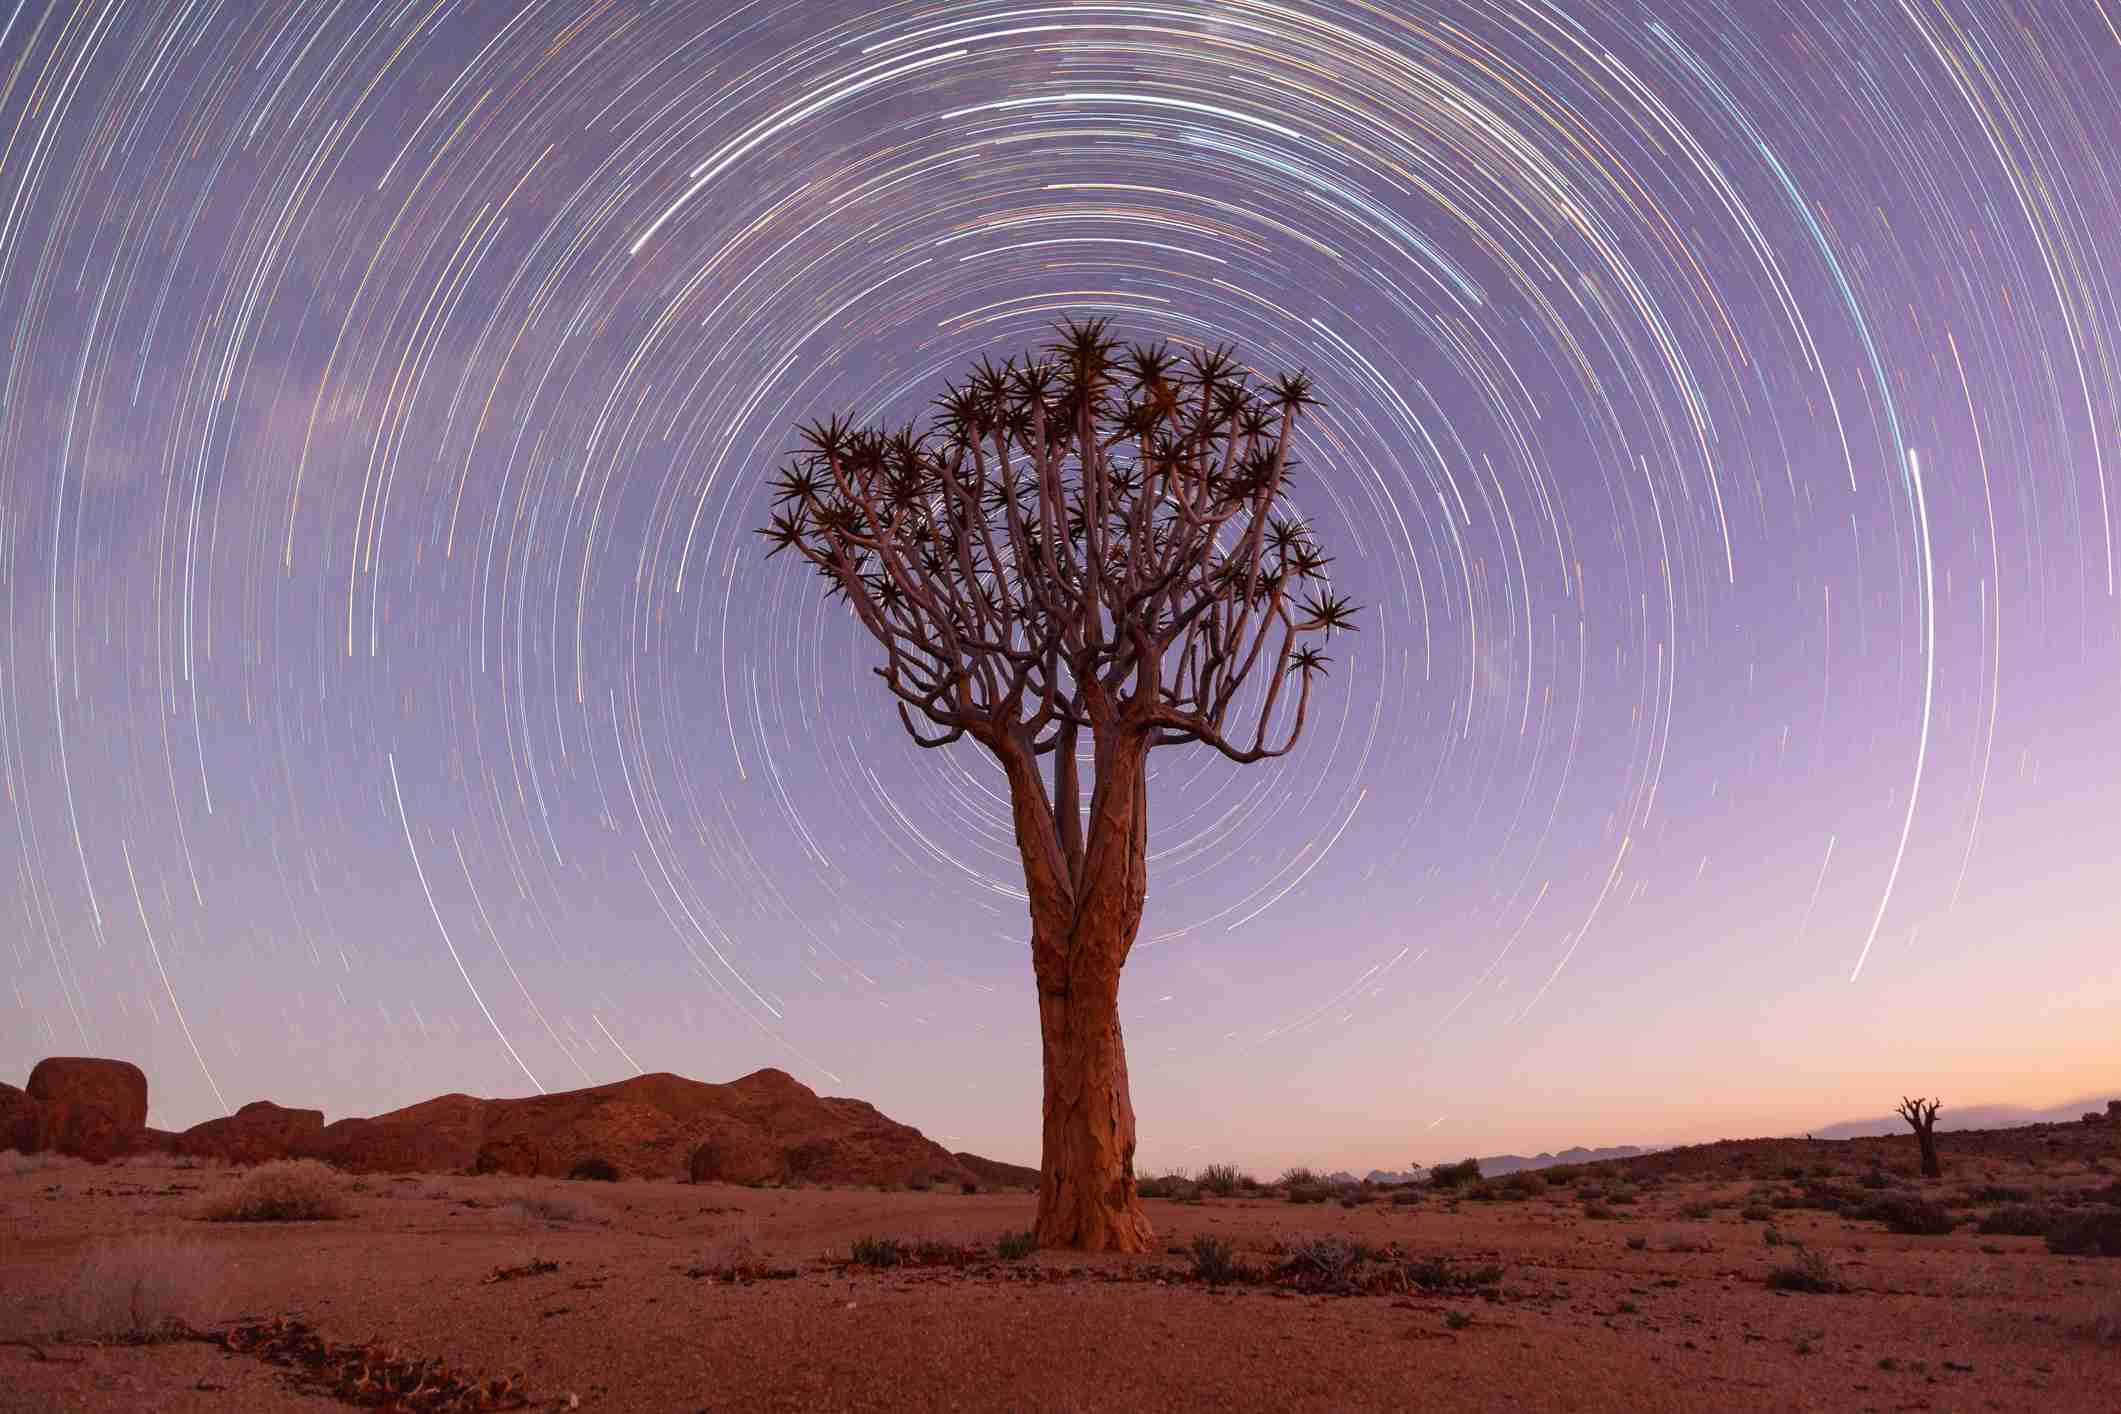 South Africa's UNESCO World Heritage Sites